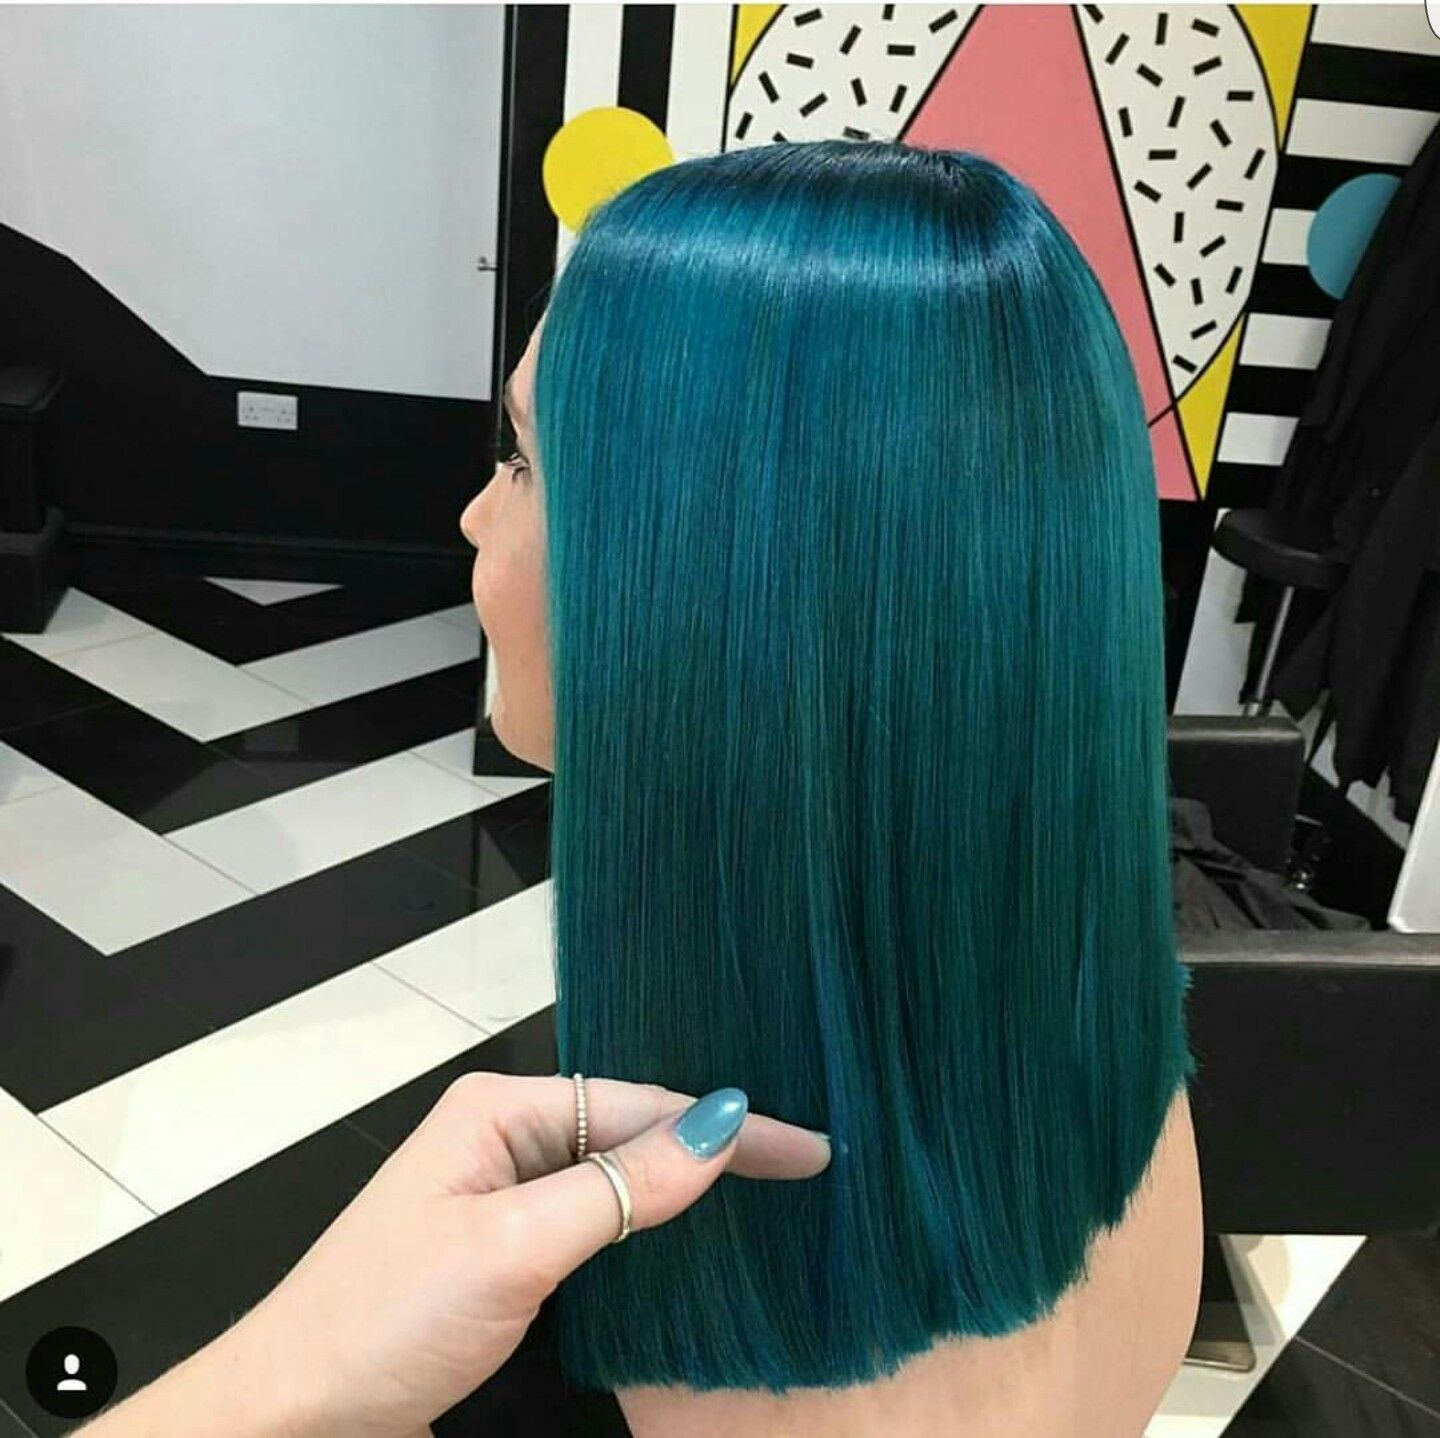 Erianasavagee color it pinterest hair coloring hair style and